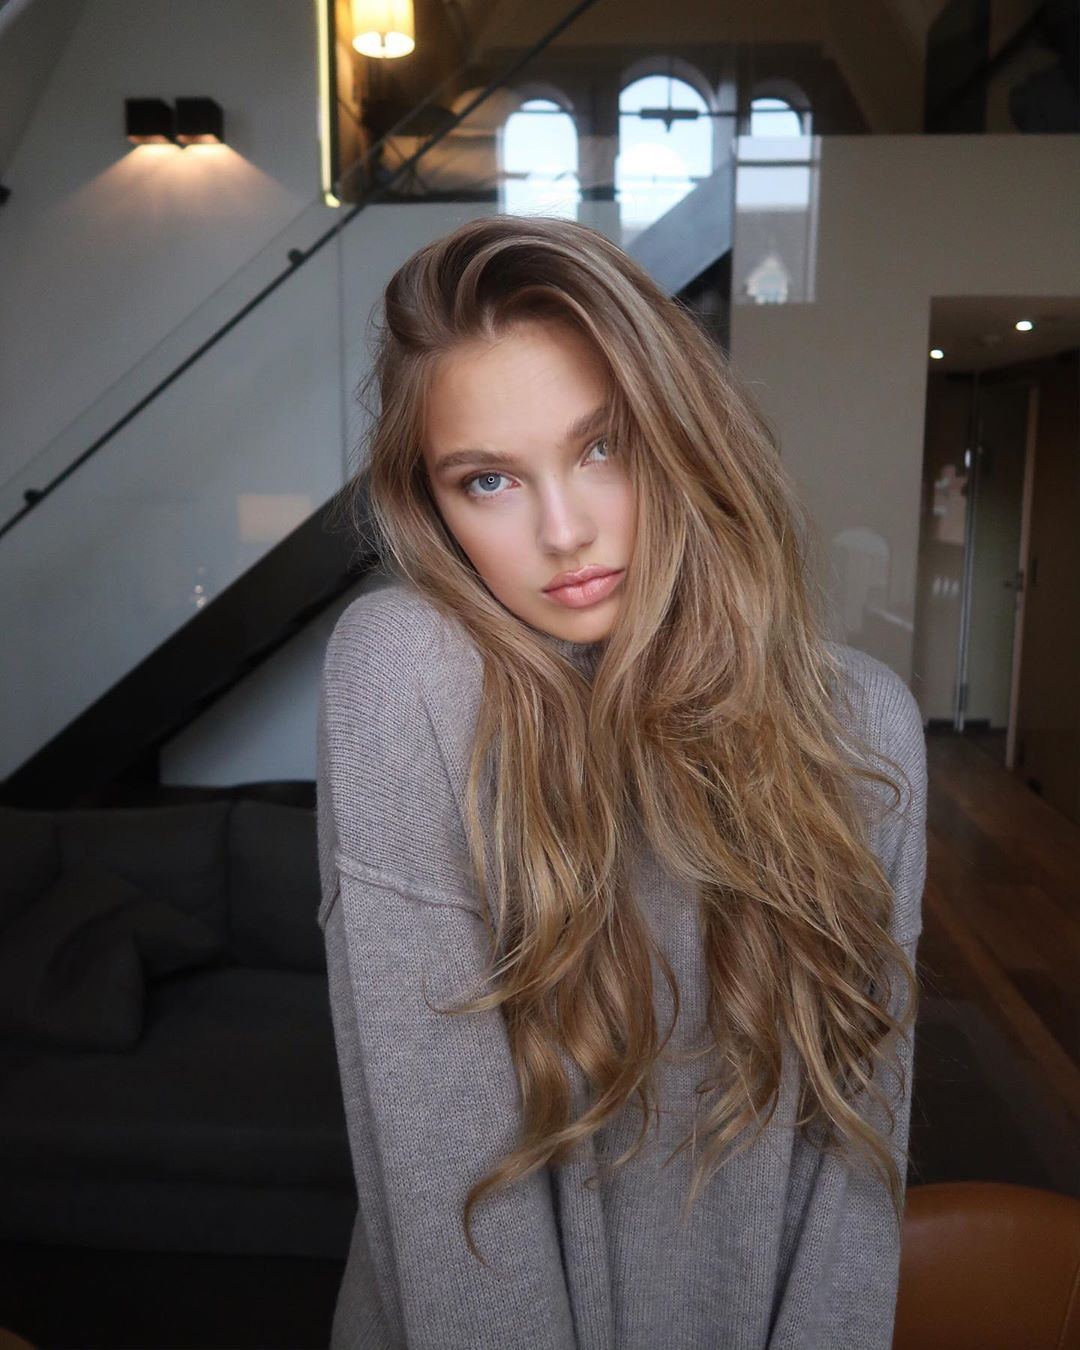 Romee Strijd cute blond hairs, Cute Face, Natural Lipstick